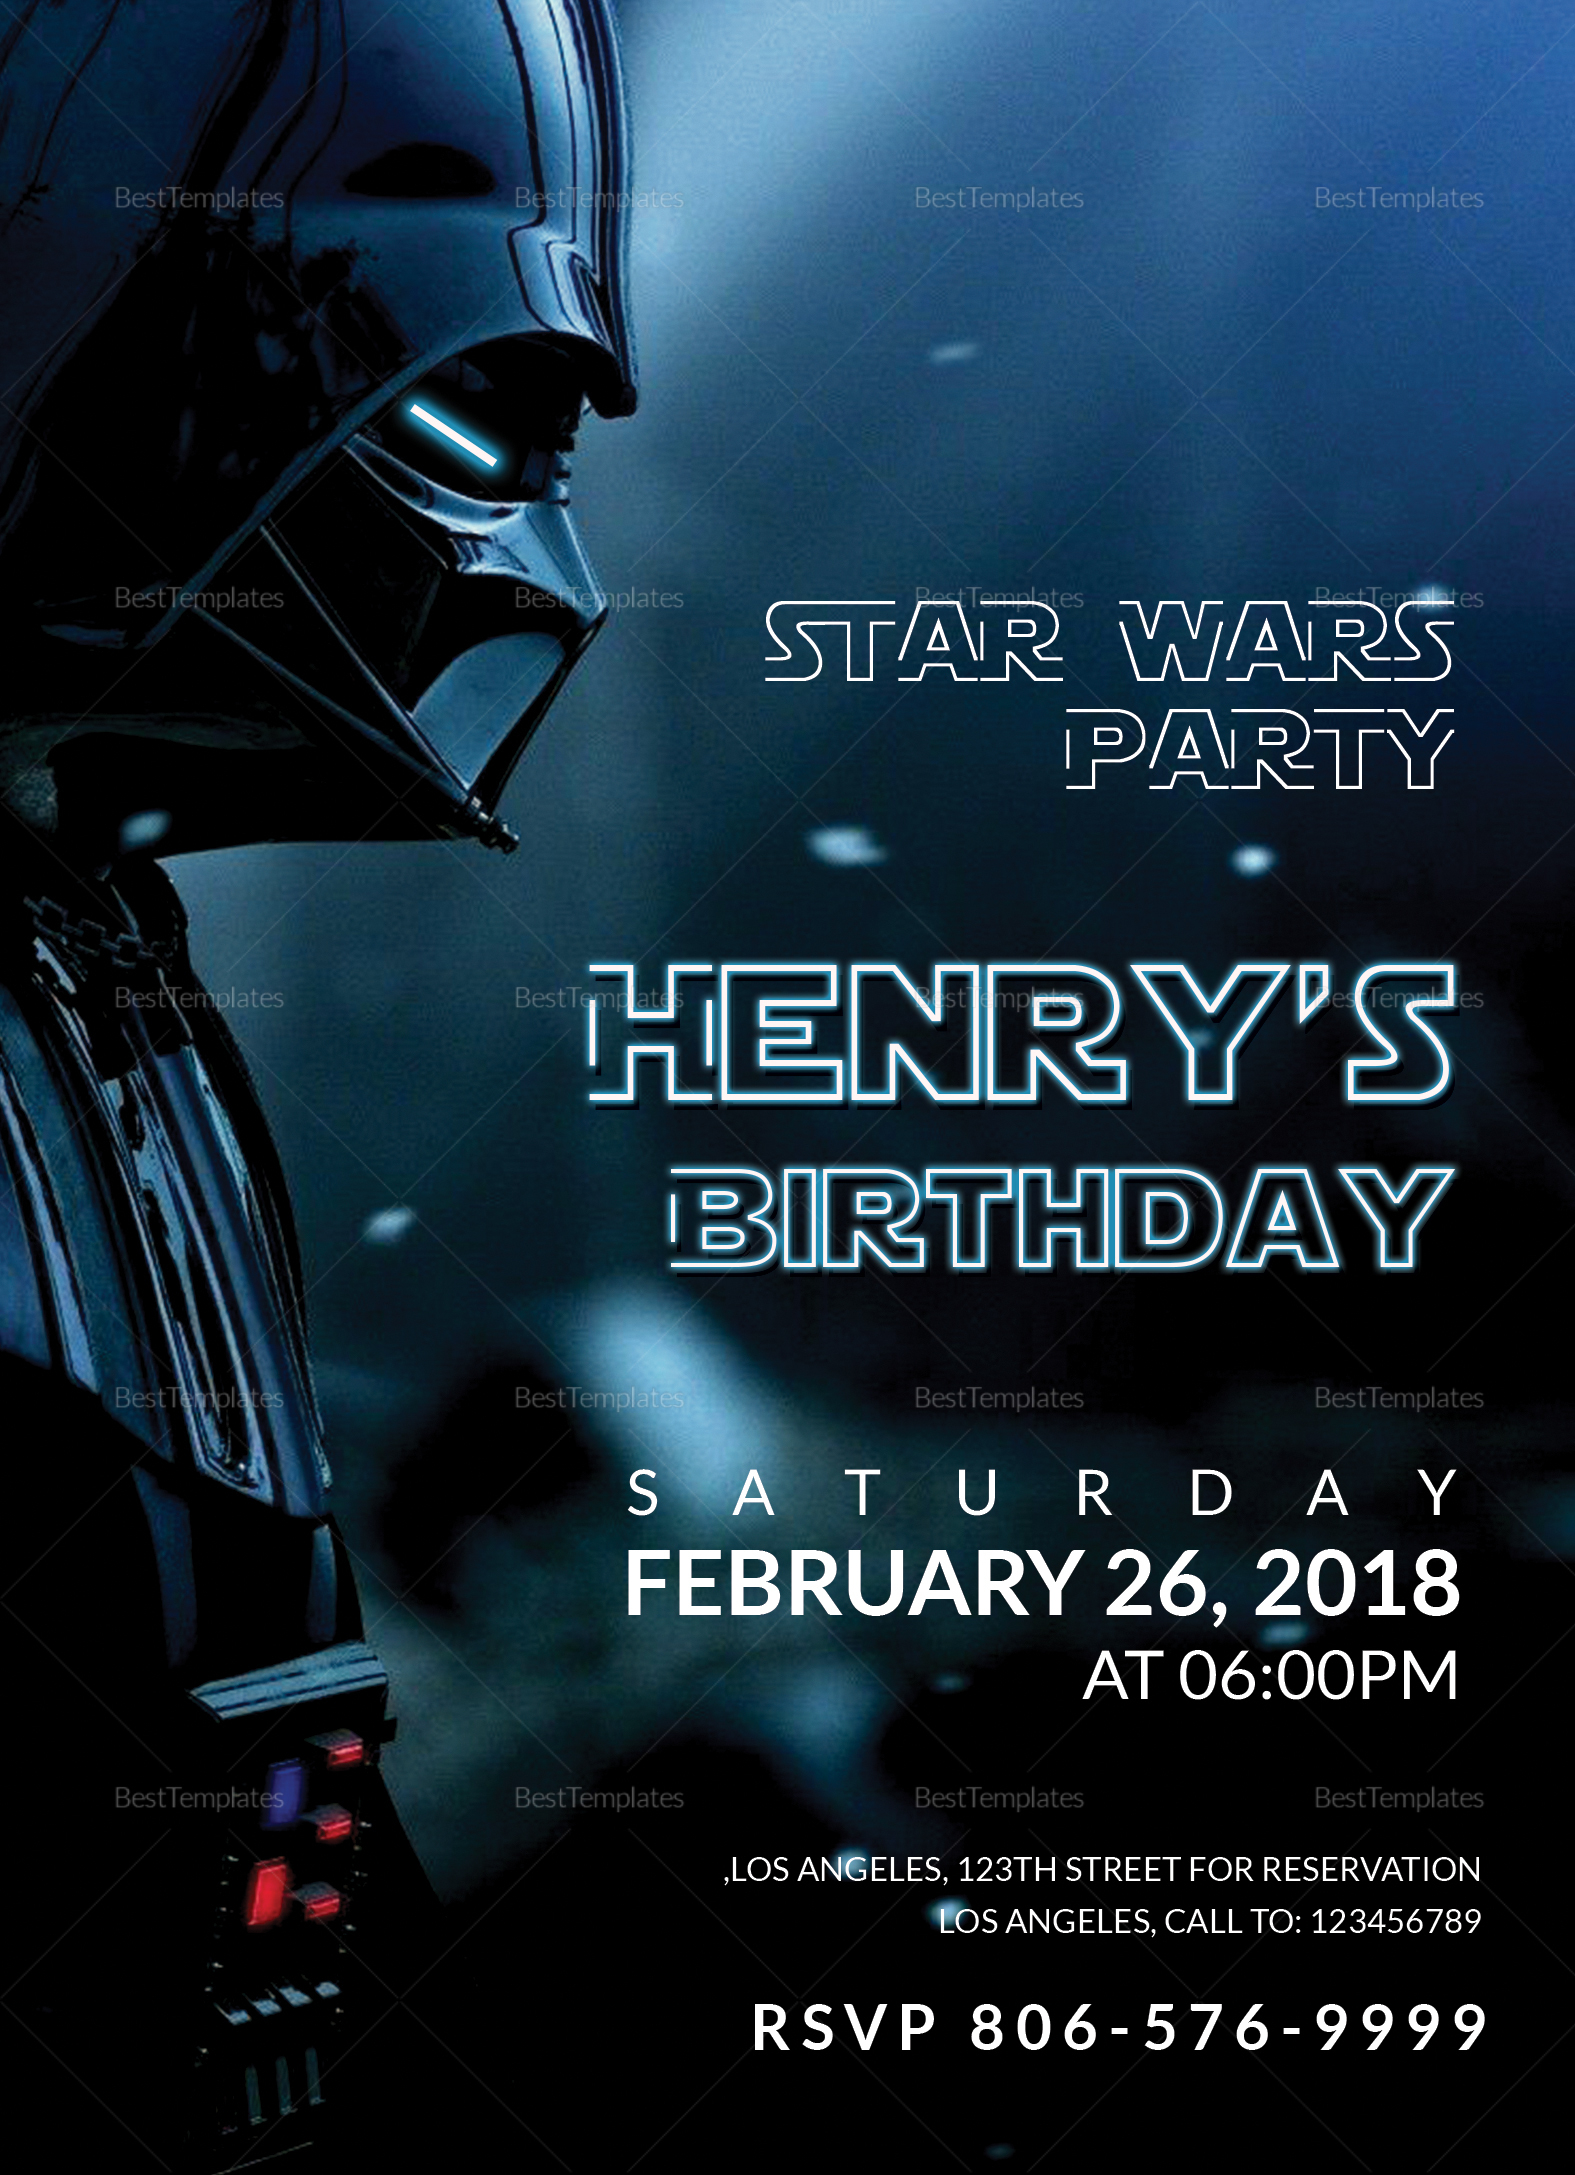 Star Wars Birthday Party Invitation Design Template In Word Psd Publisher